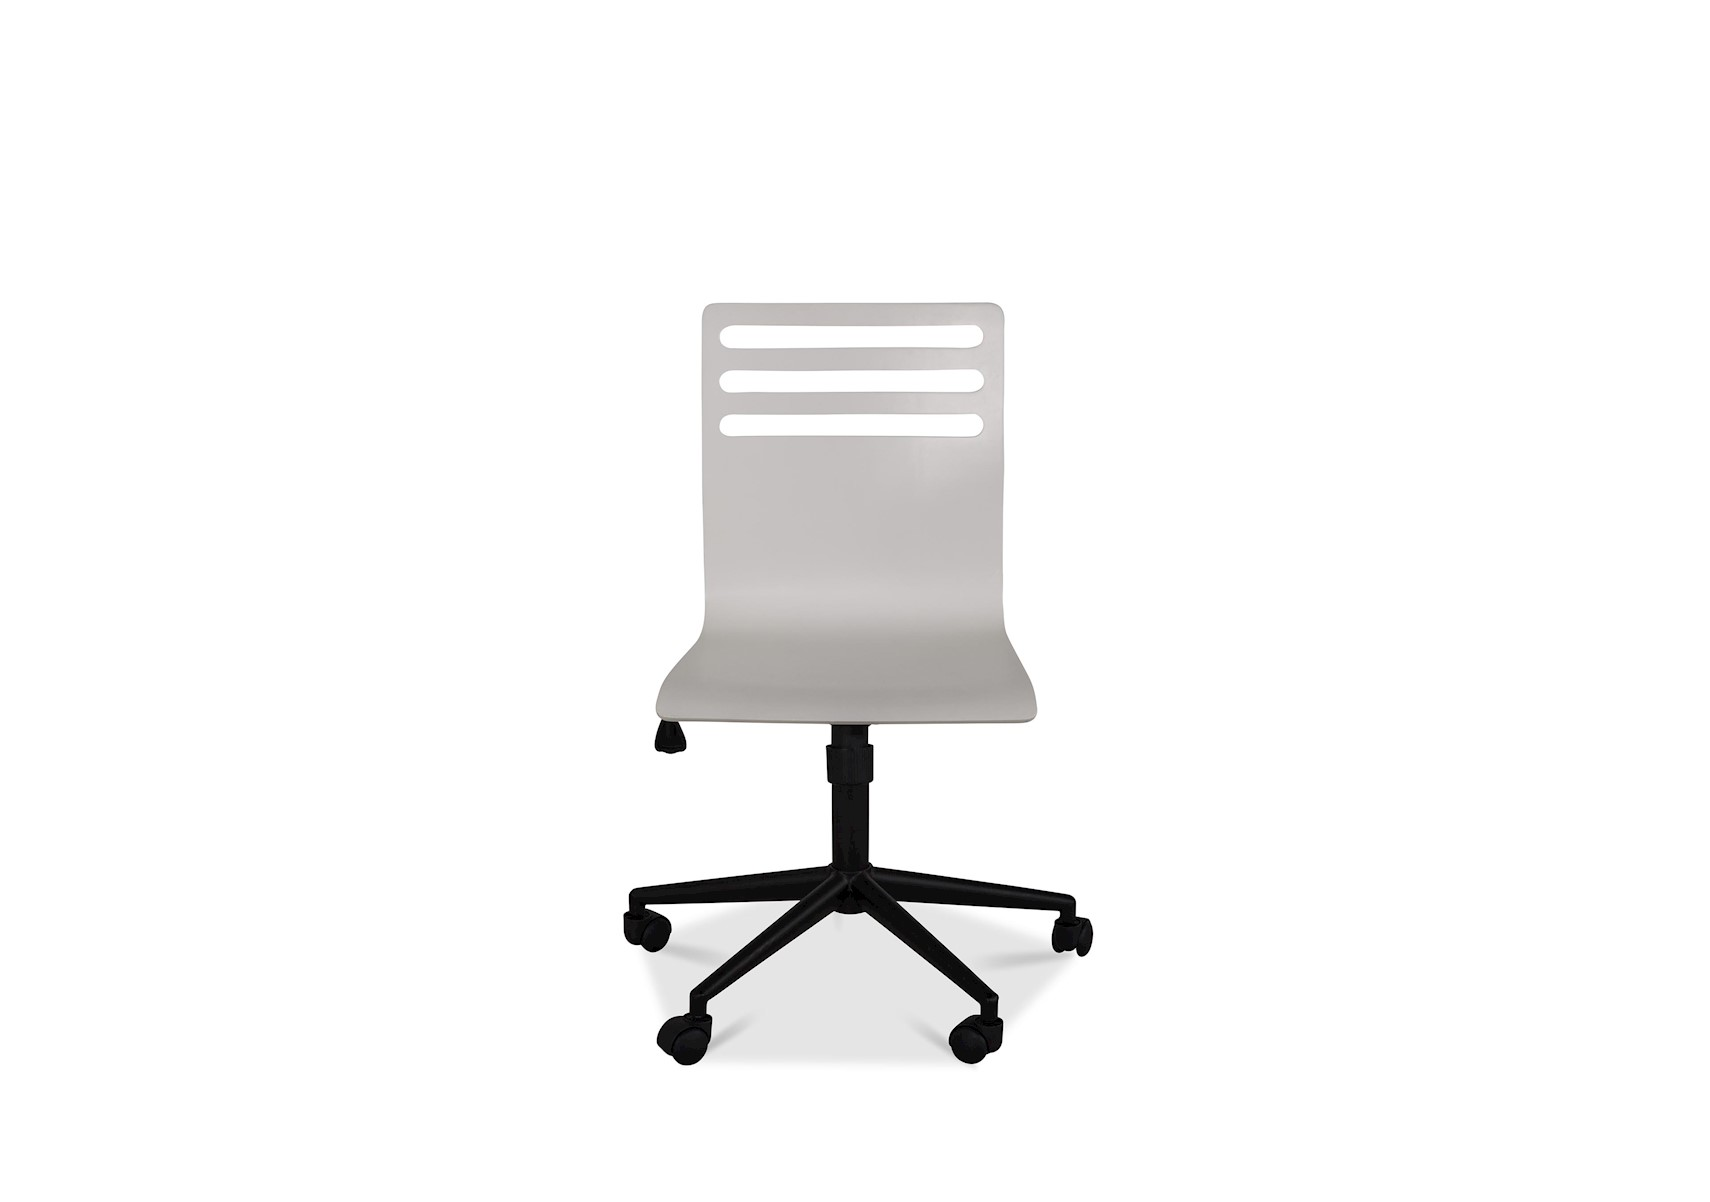 Classics 4 0 White Swivel Desk Chair